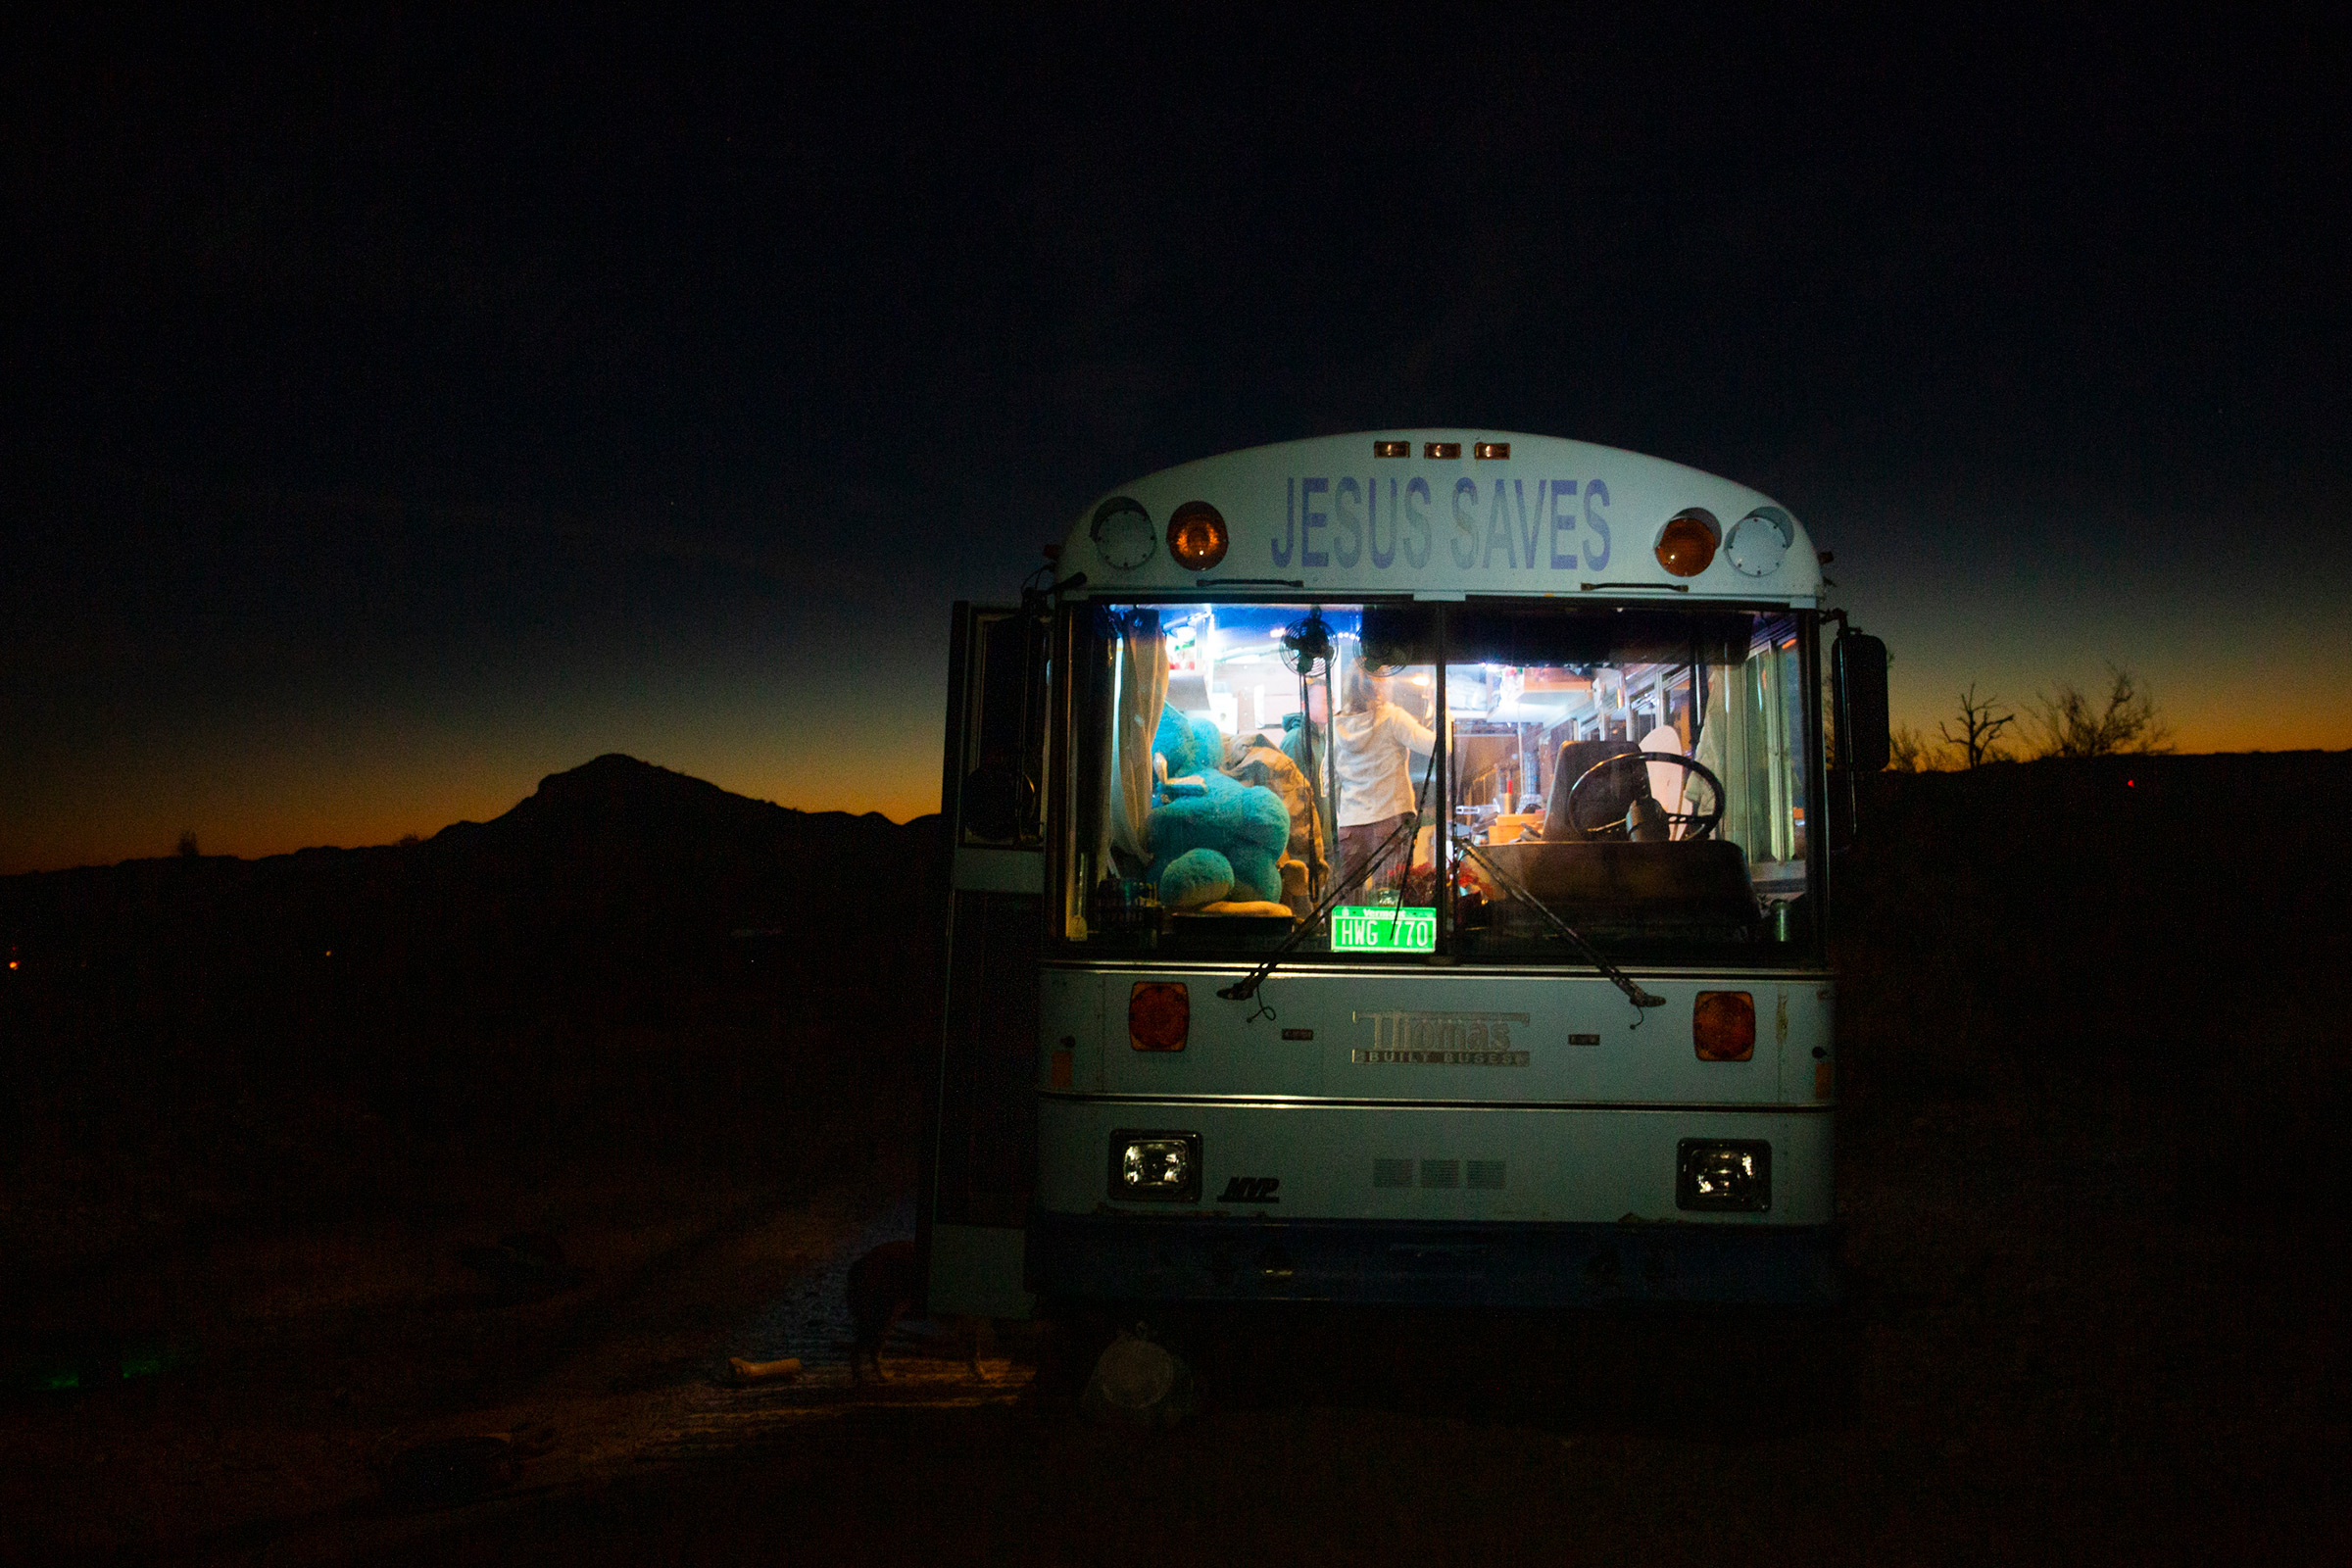 Paula and Max's 'Jesus Saves' bus provides warmth on cold desert nights outside Lake Havasu City, Az., on Feb. 23. Paula was raised Jewish and does not identify as Christian; she found the retired Baptist school bus in San Diego last year and it fit within her budget.